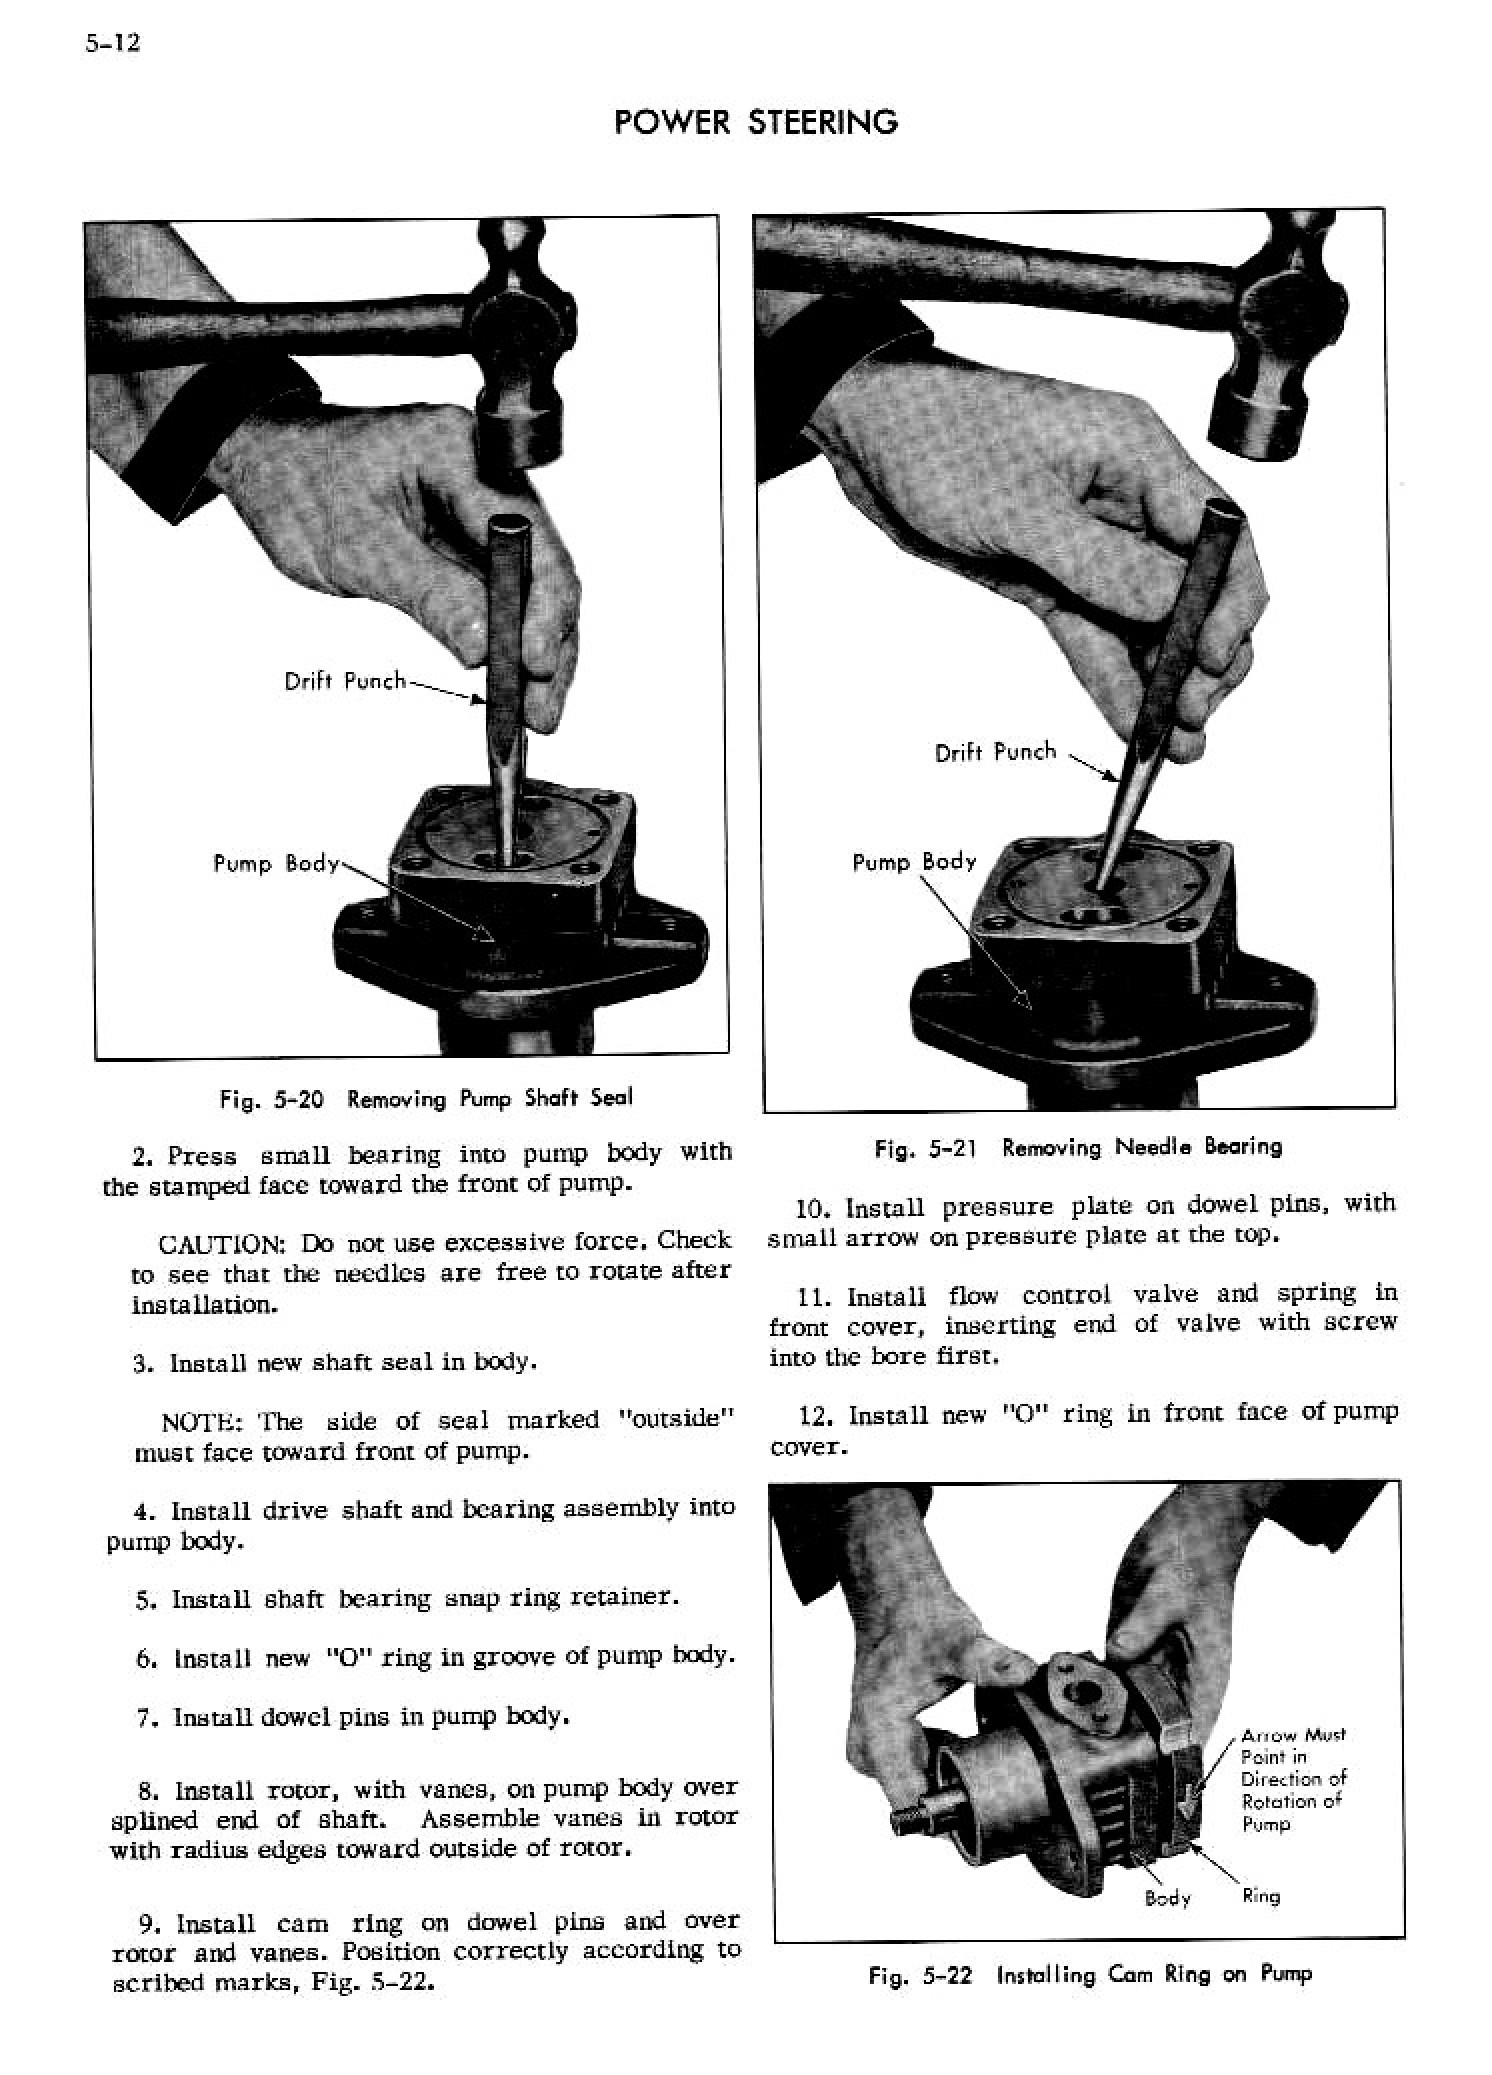 Cadillac Shop Manual Power Steering Page 12 Of 26